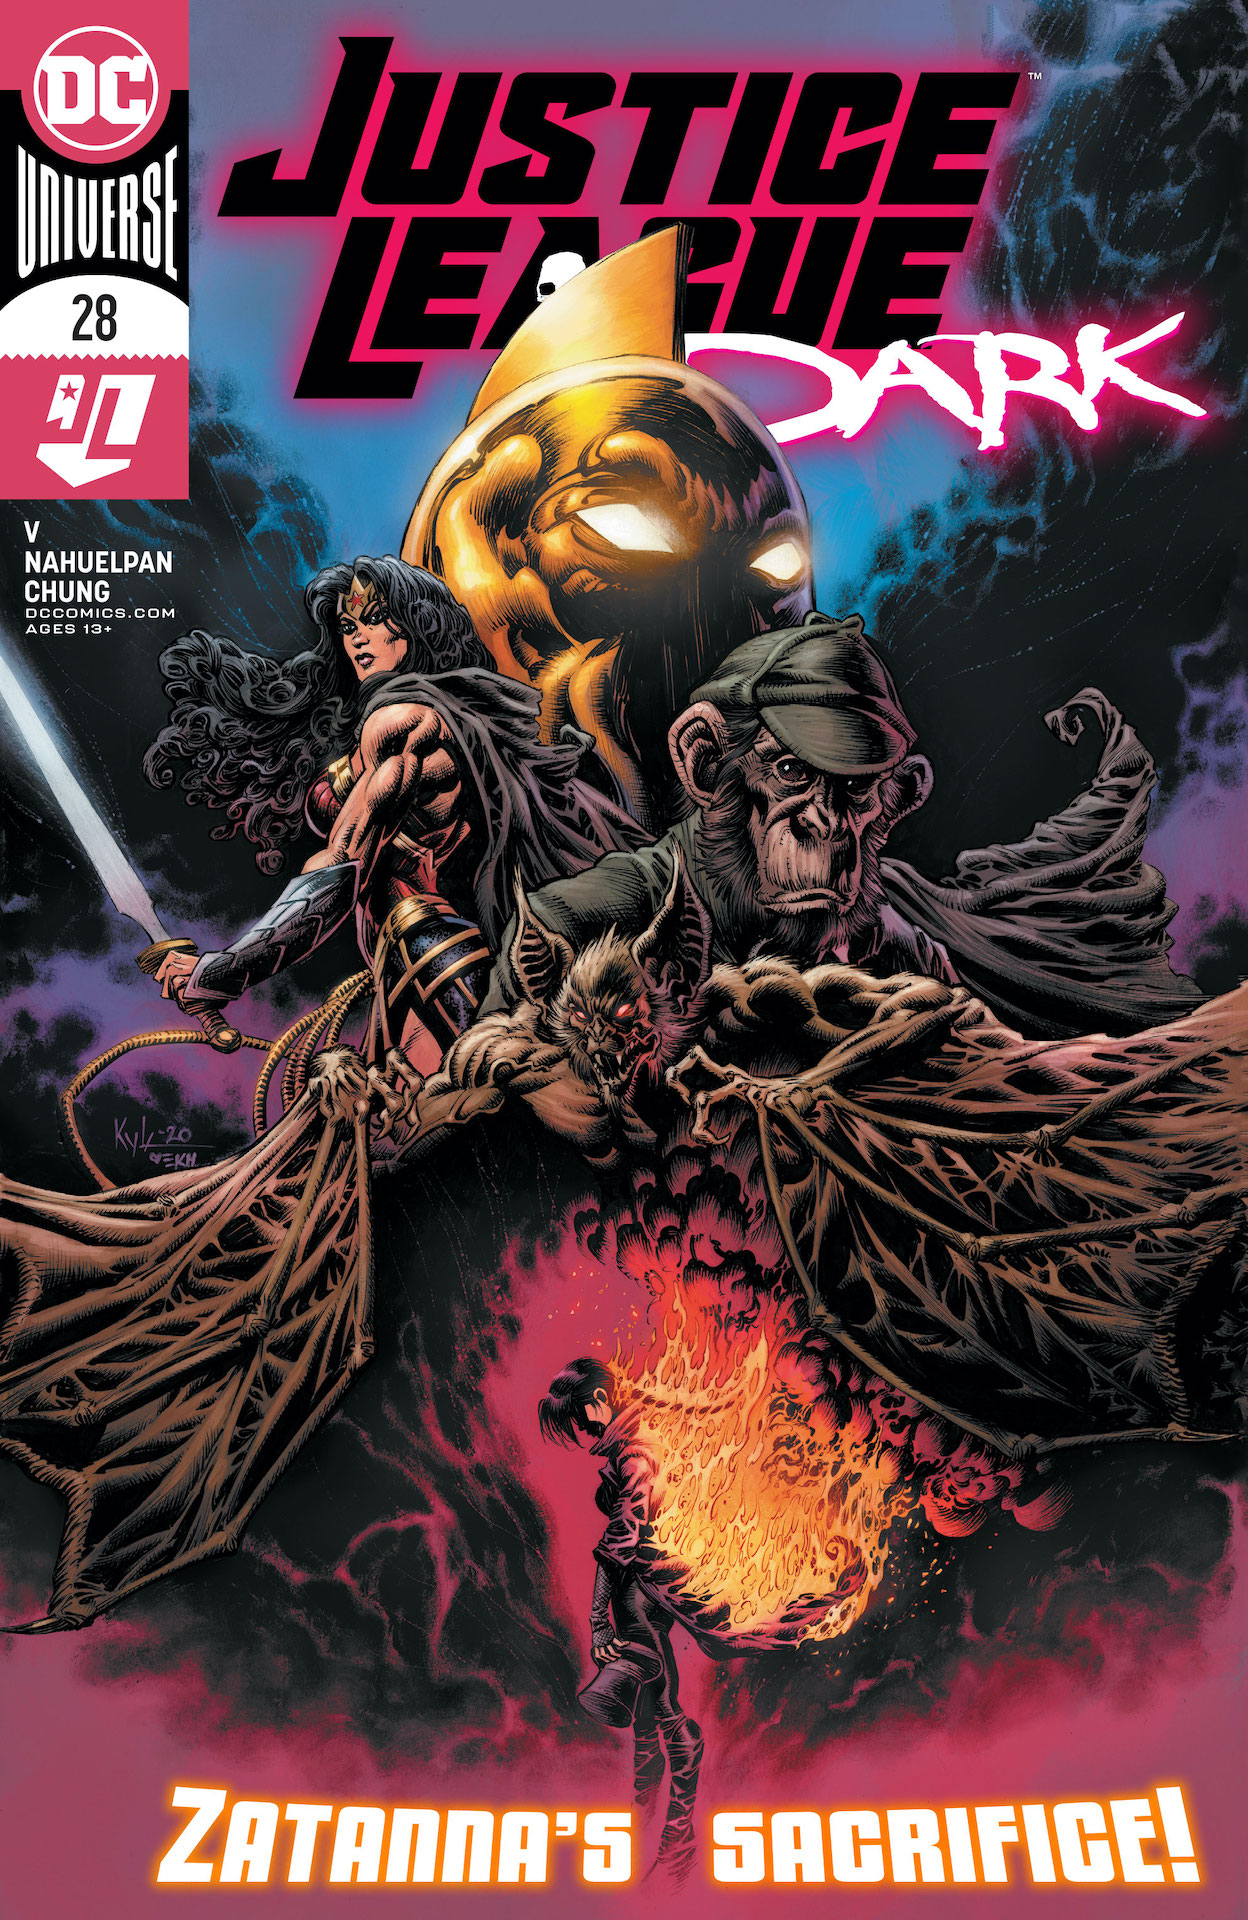 DC Preview: Justice League Dark #28